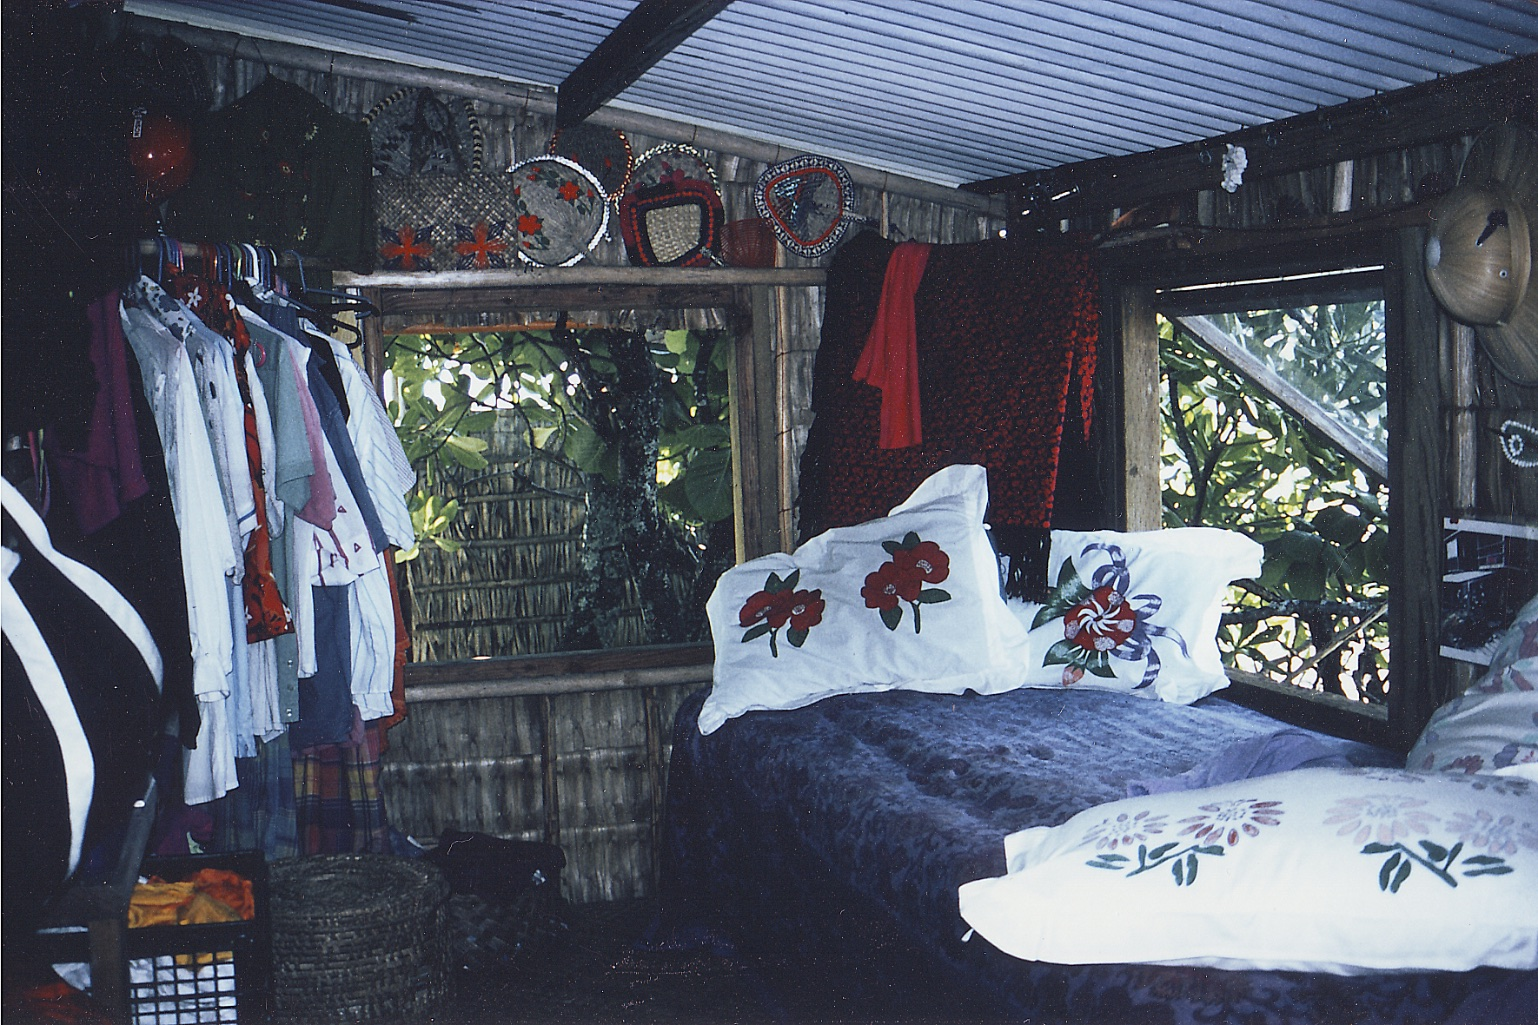 Joan's petite but comfortable bedroom. (Photo credit: DK Howe)